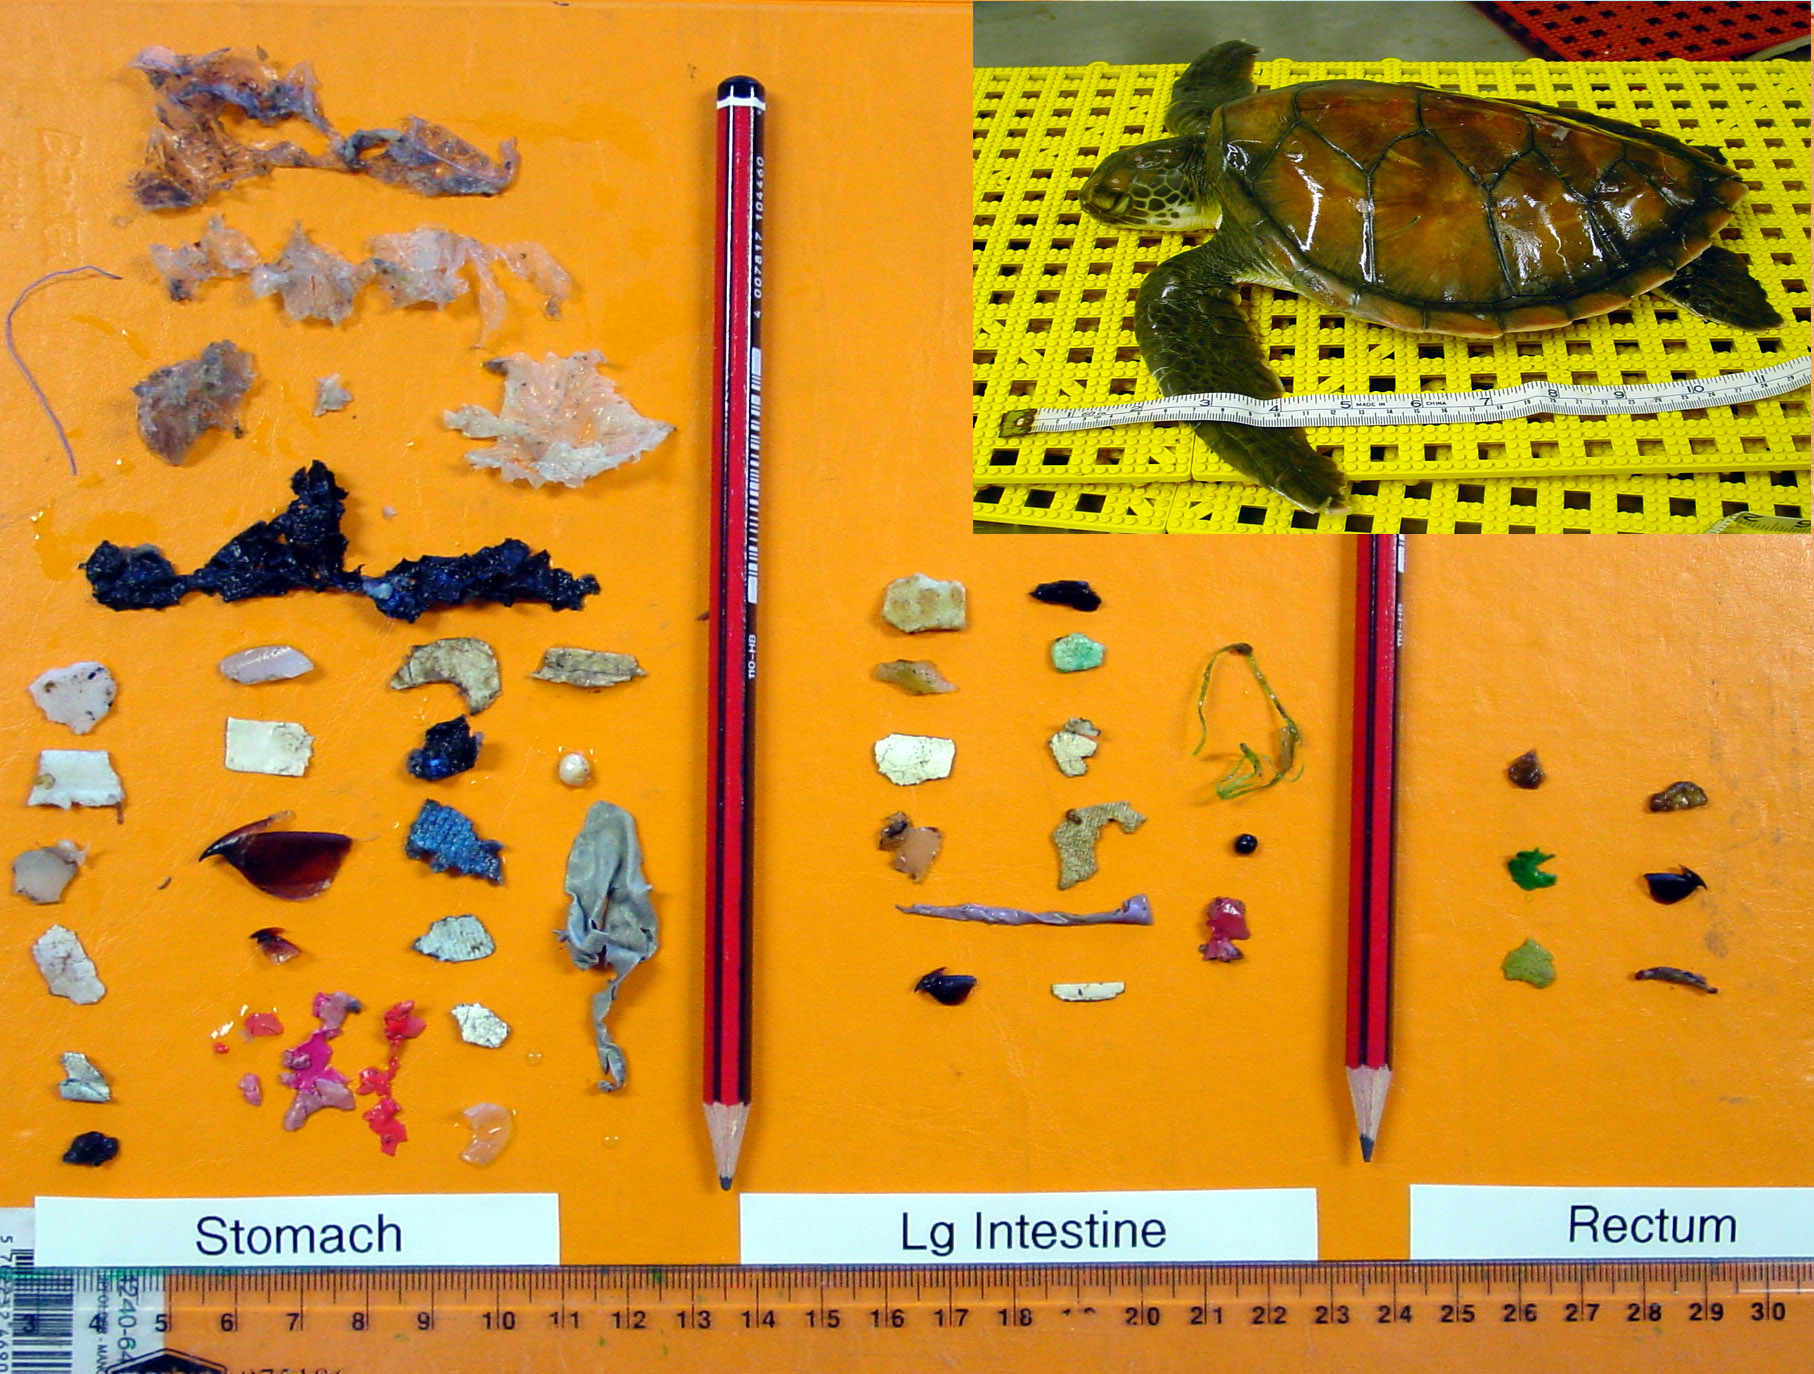 40 difference pieces of plastic, including plastic bags, bits of hard plastic, duct tape and balloons, laid out on a table next to a small dead green sea turtle.